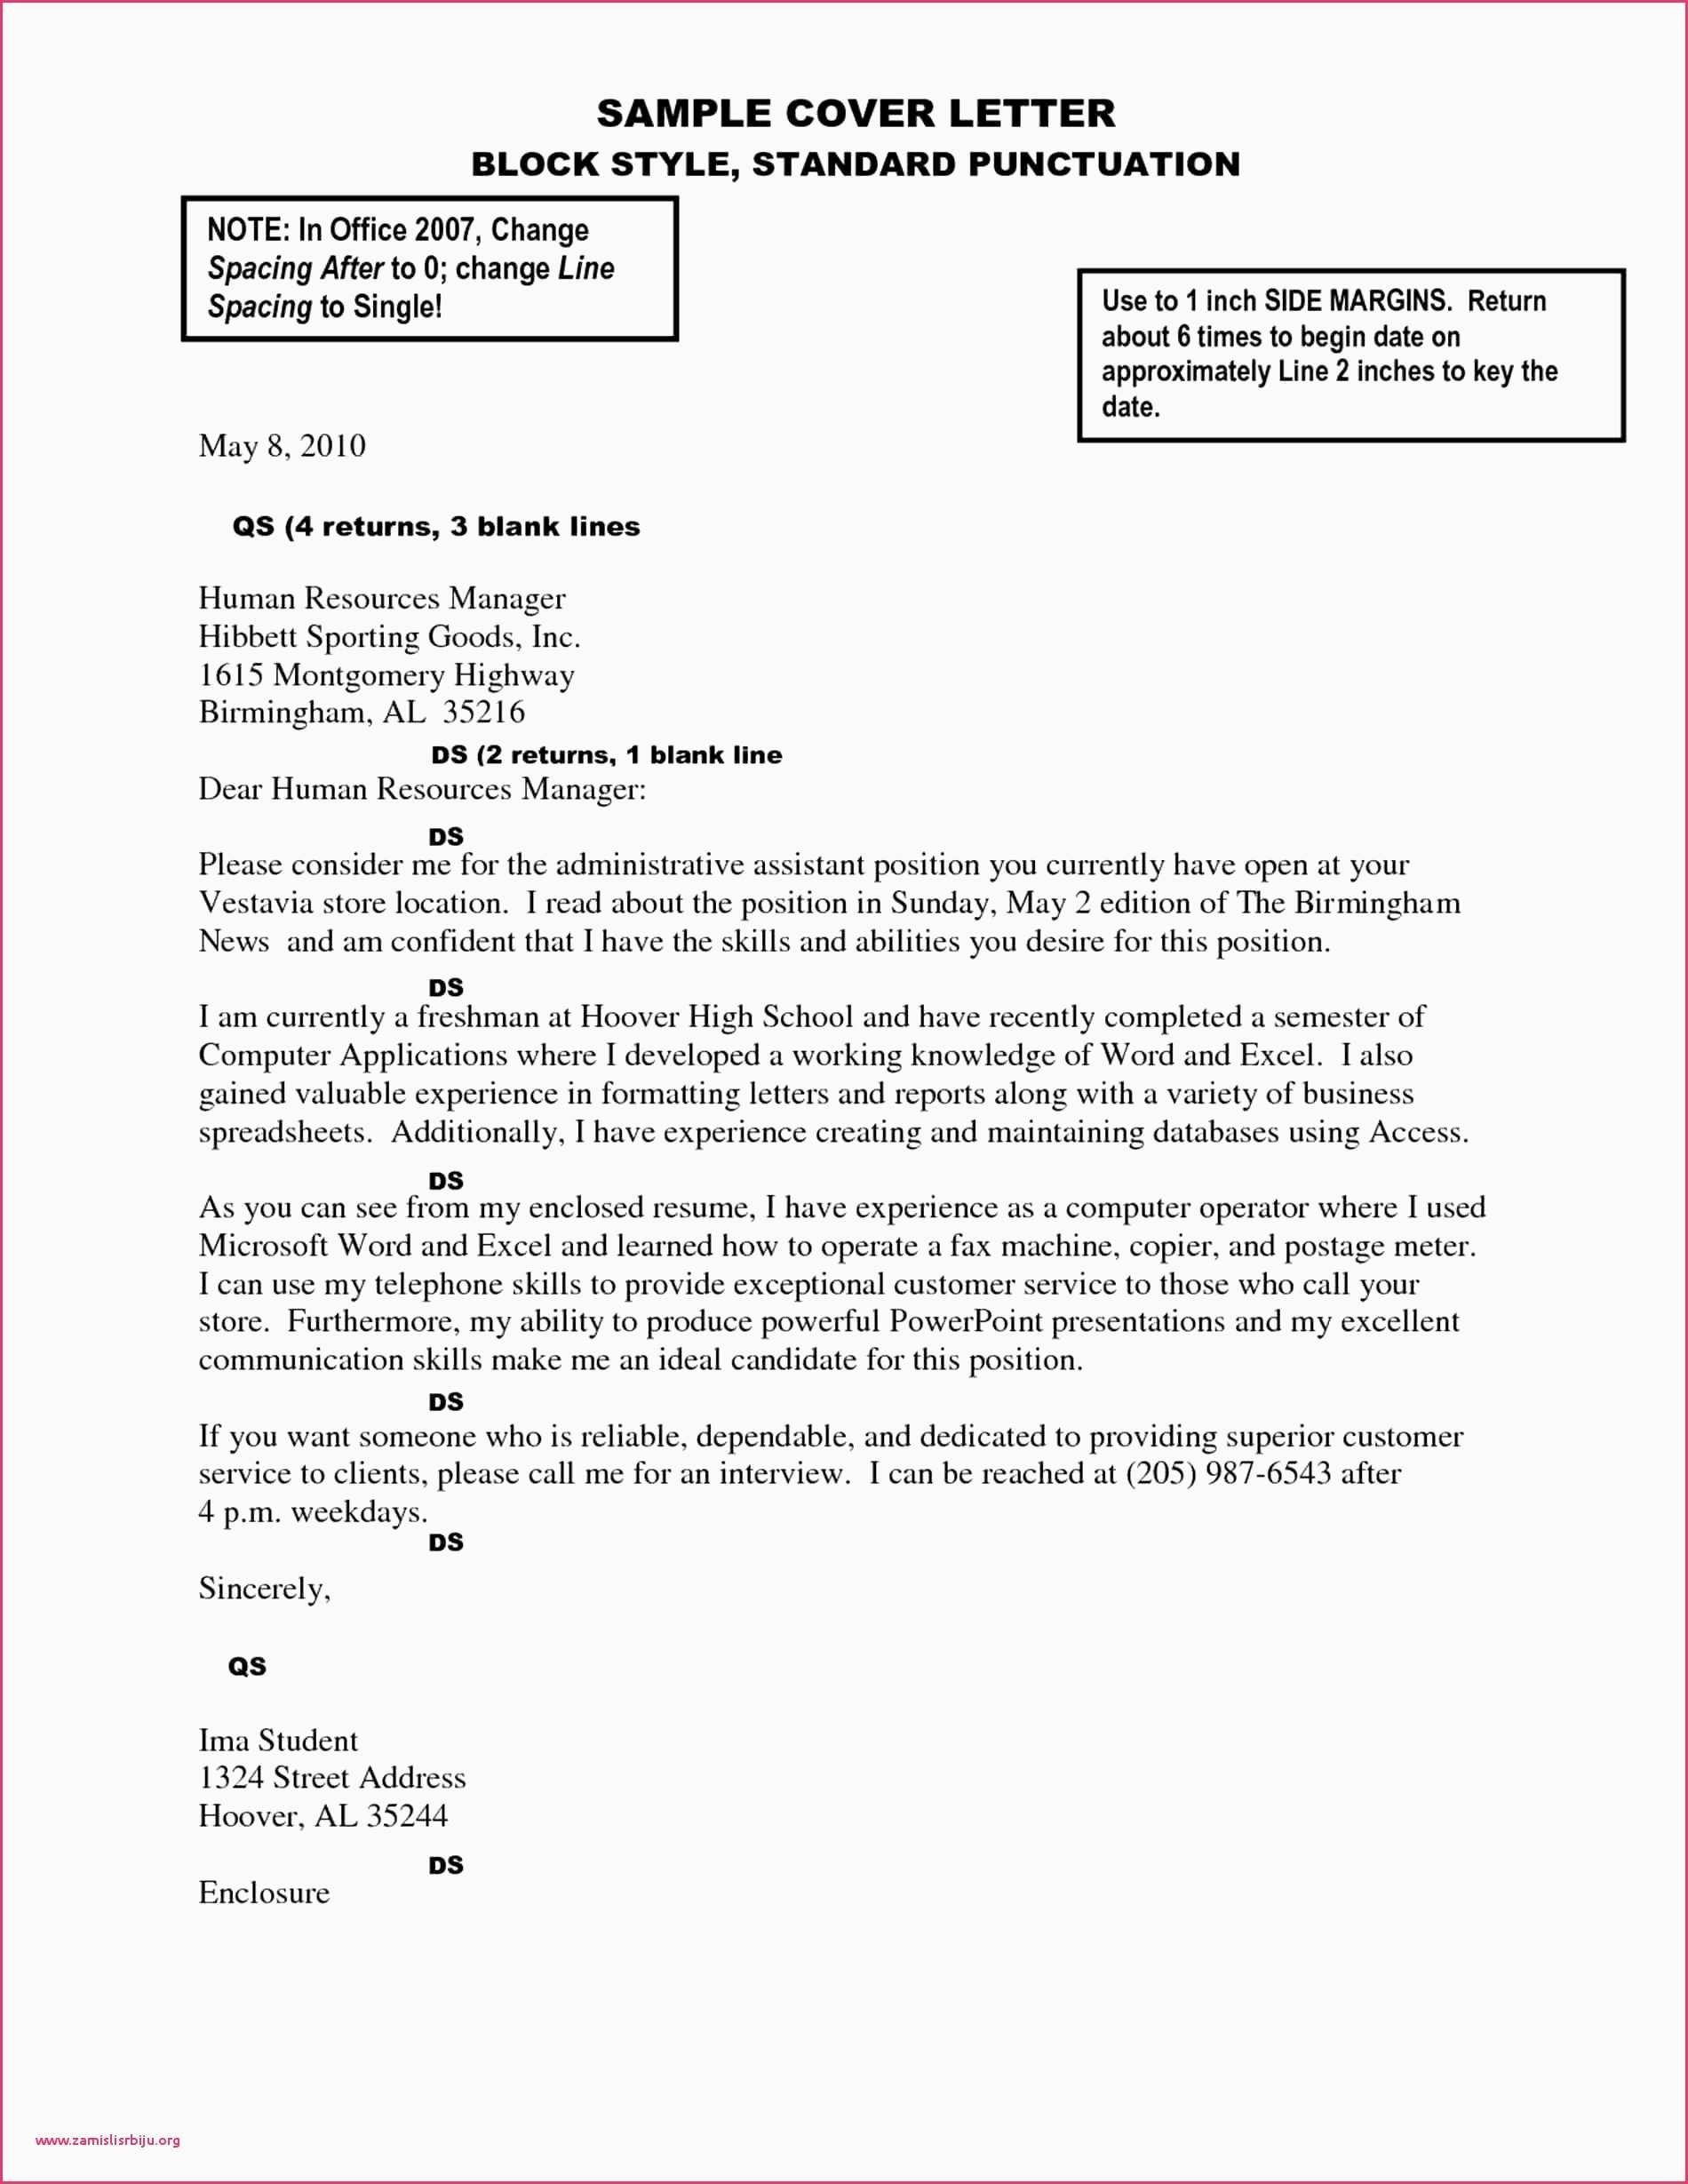 Download Fresh Formal Letter Job Application Lettersample